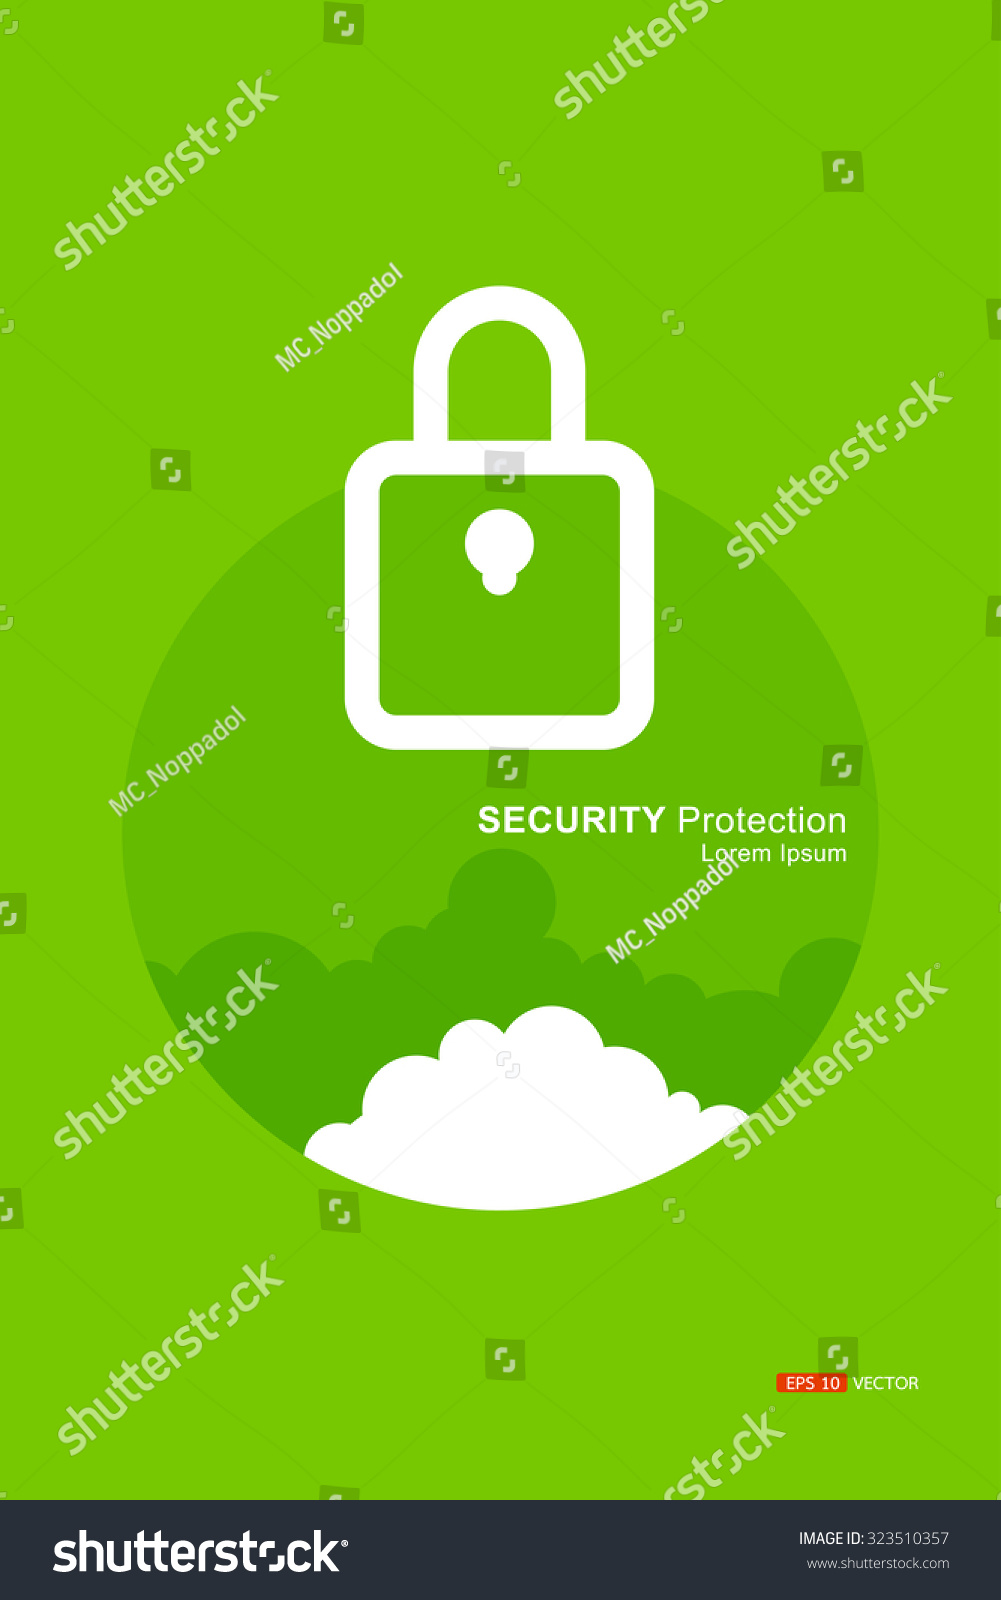 Security protection agent meaning symbols logos stock vector security protection agent meaning symbols logos trademarks vector eps 10 biocorpaavc Gallery